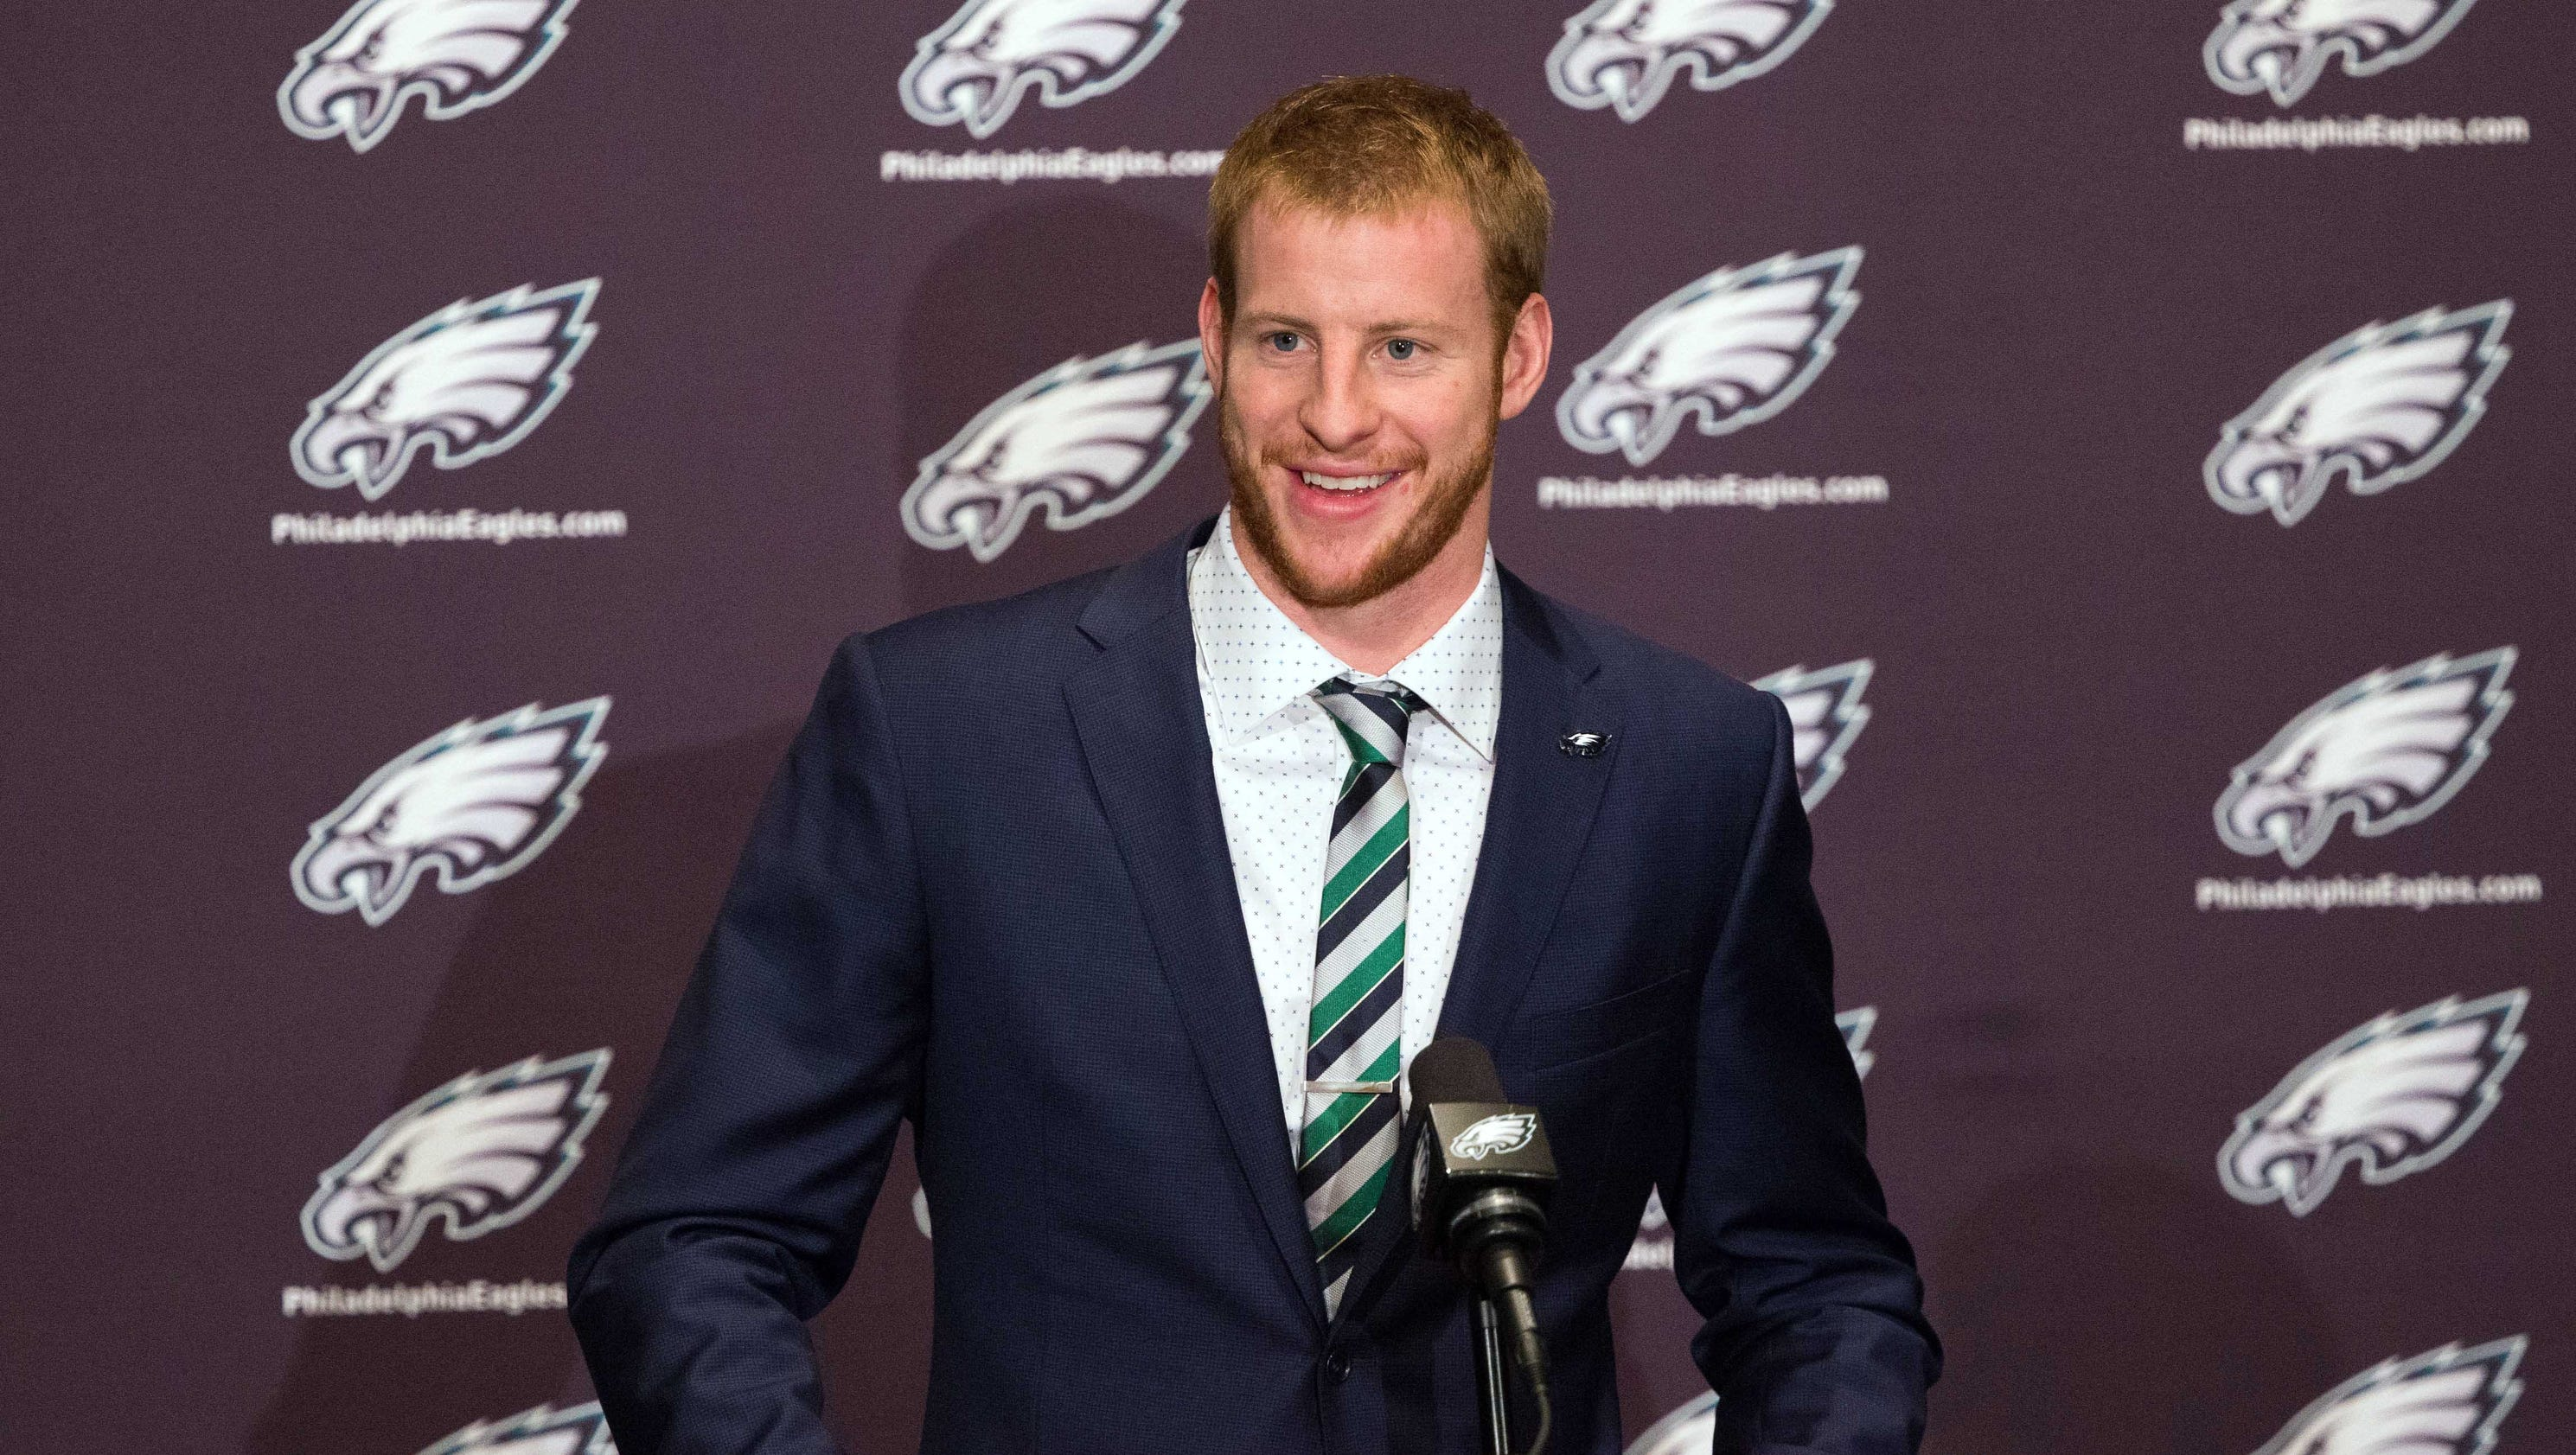 Carson Wentz signs rookie contract with Eagles